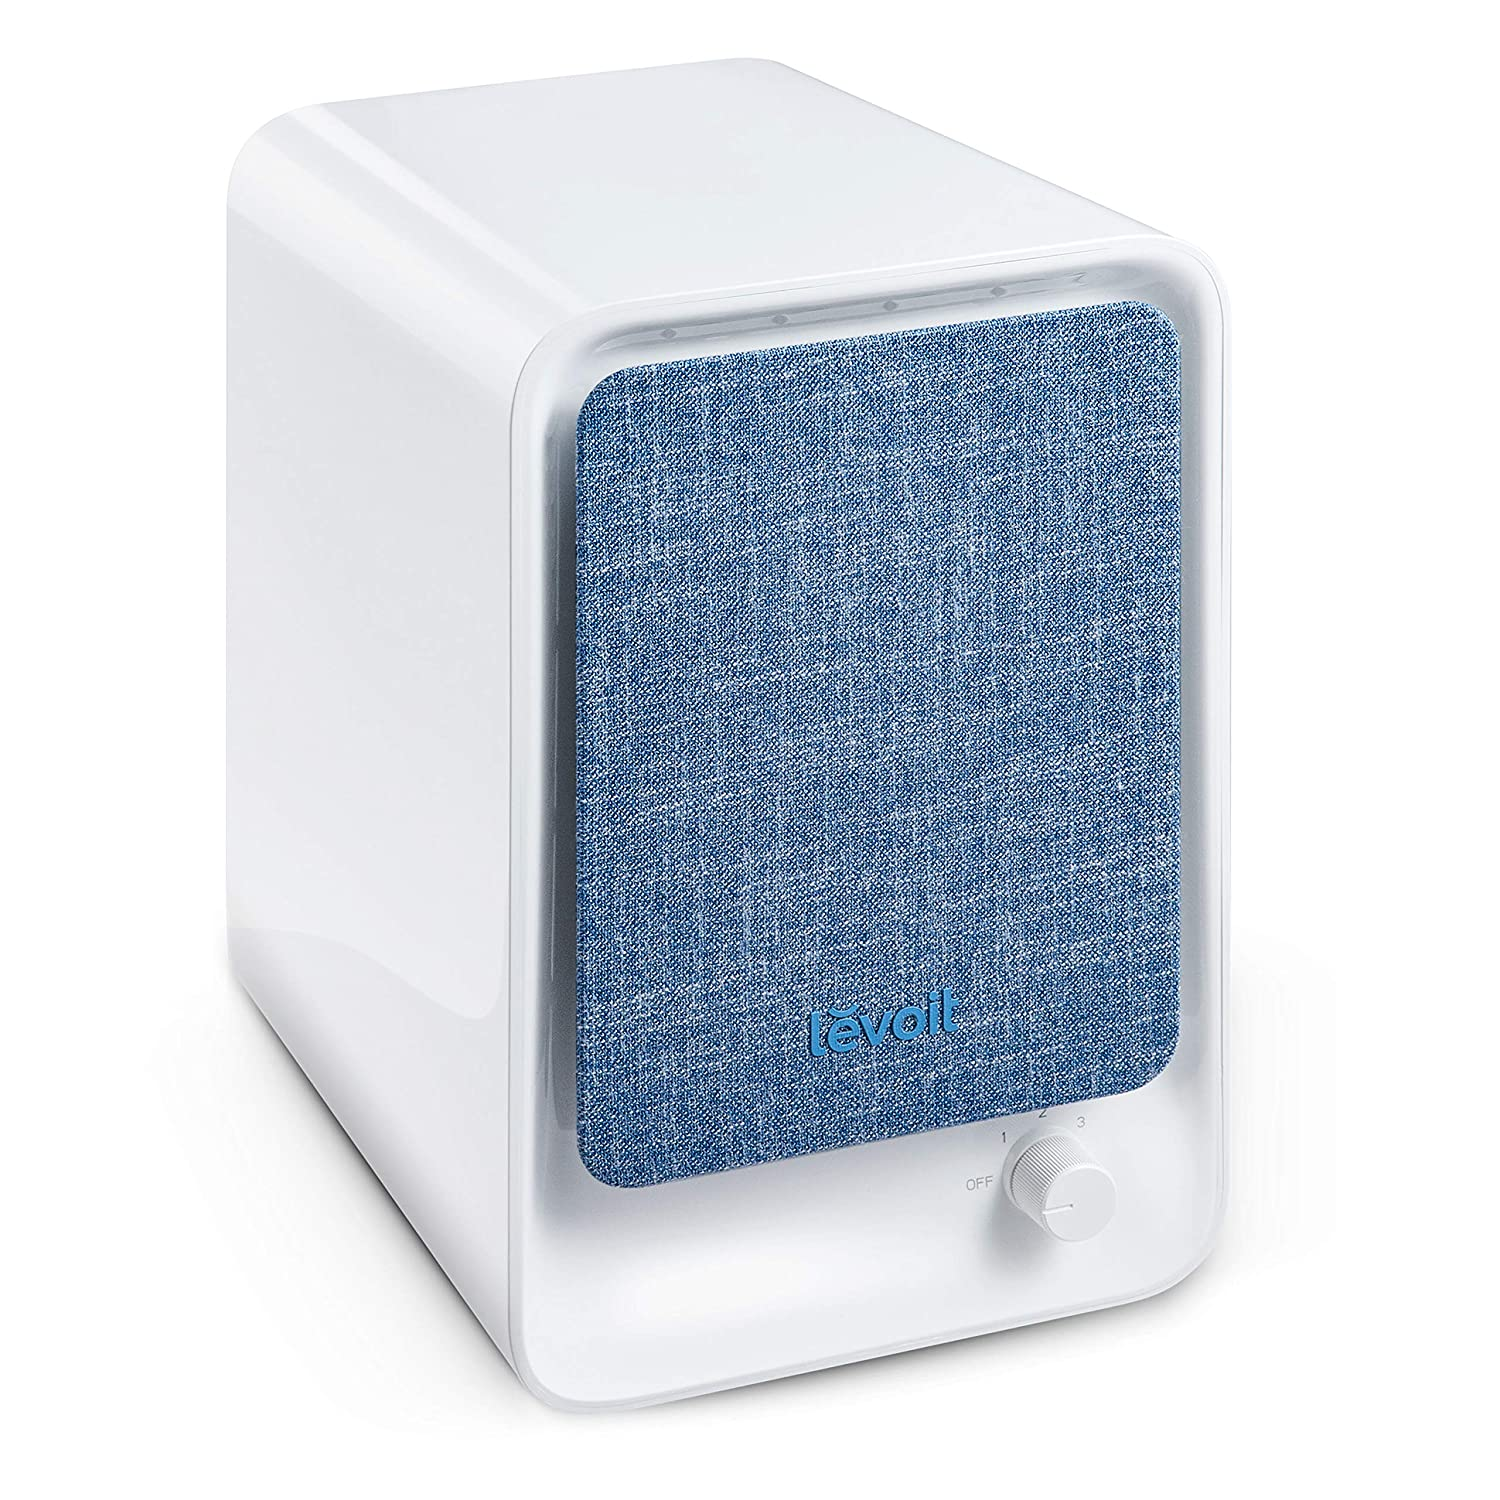 LEVOIT Air Purifiers for Home with True HEPA Filter, Compact Air Cleaner Purifier